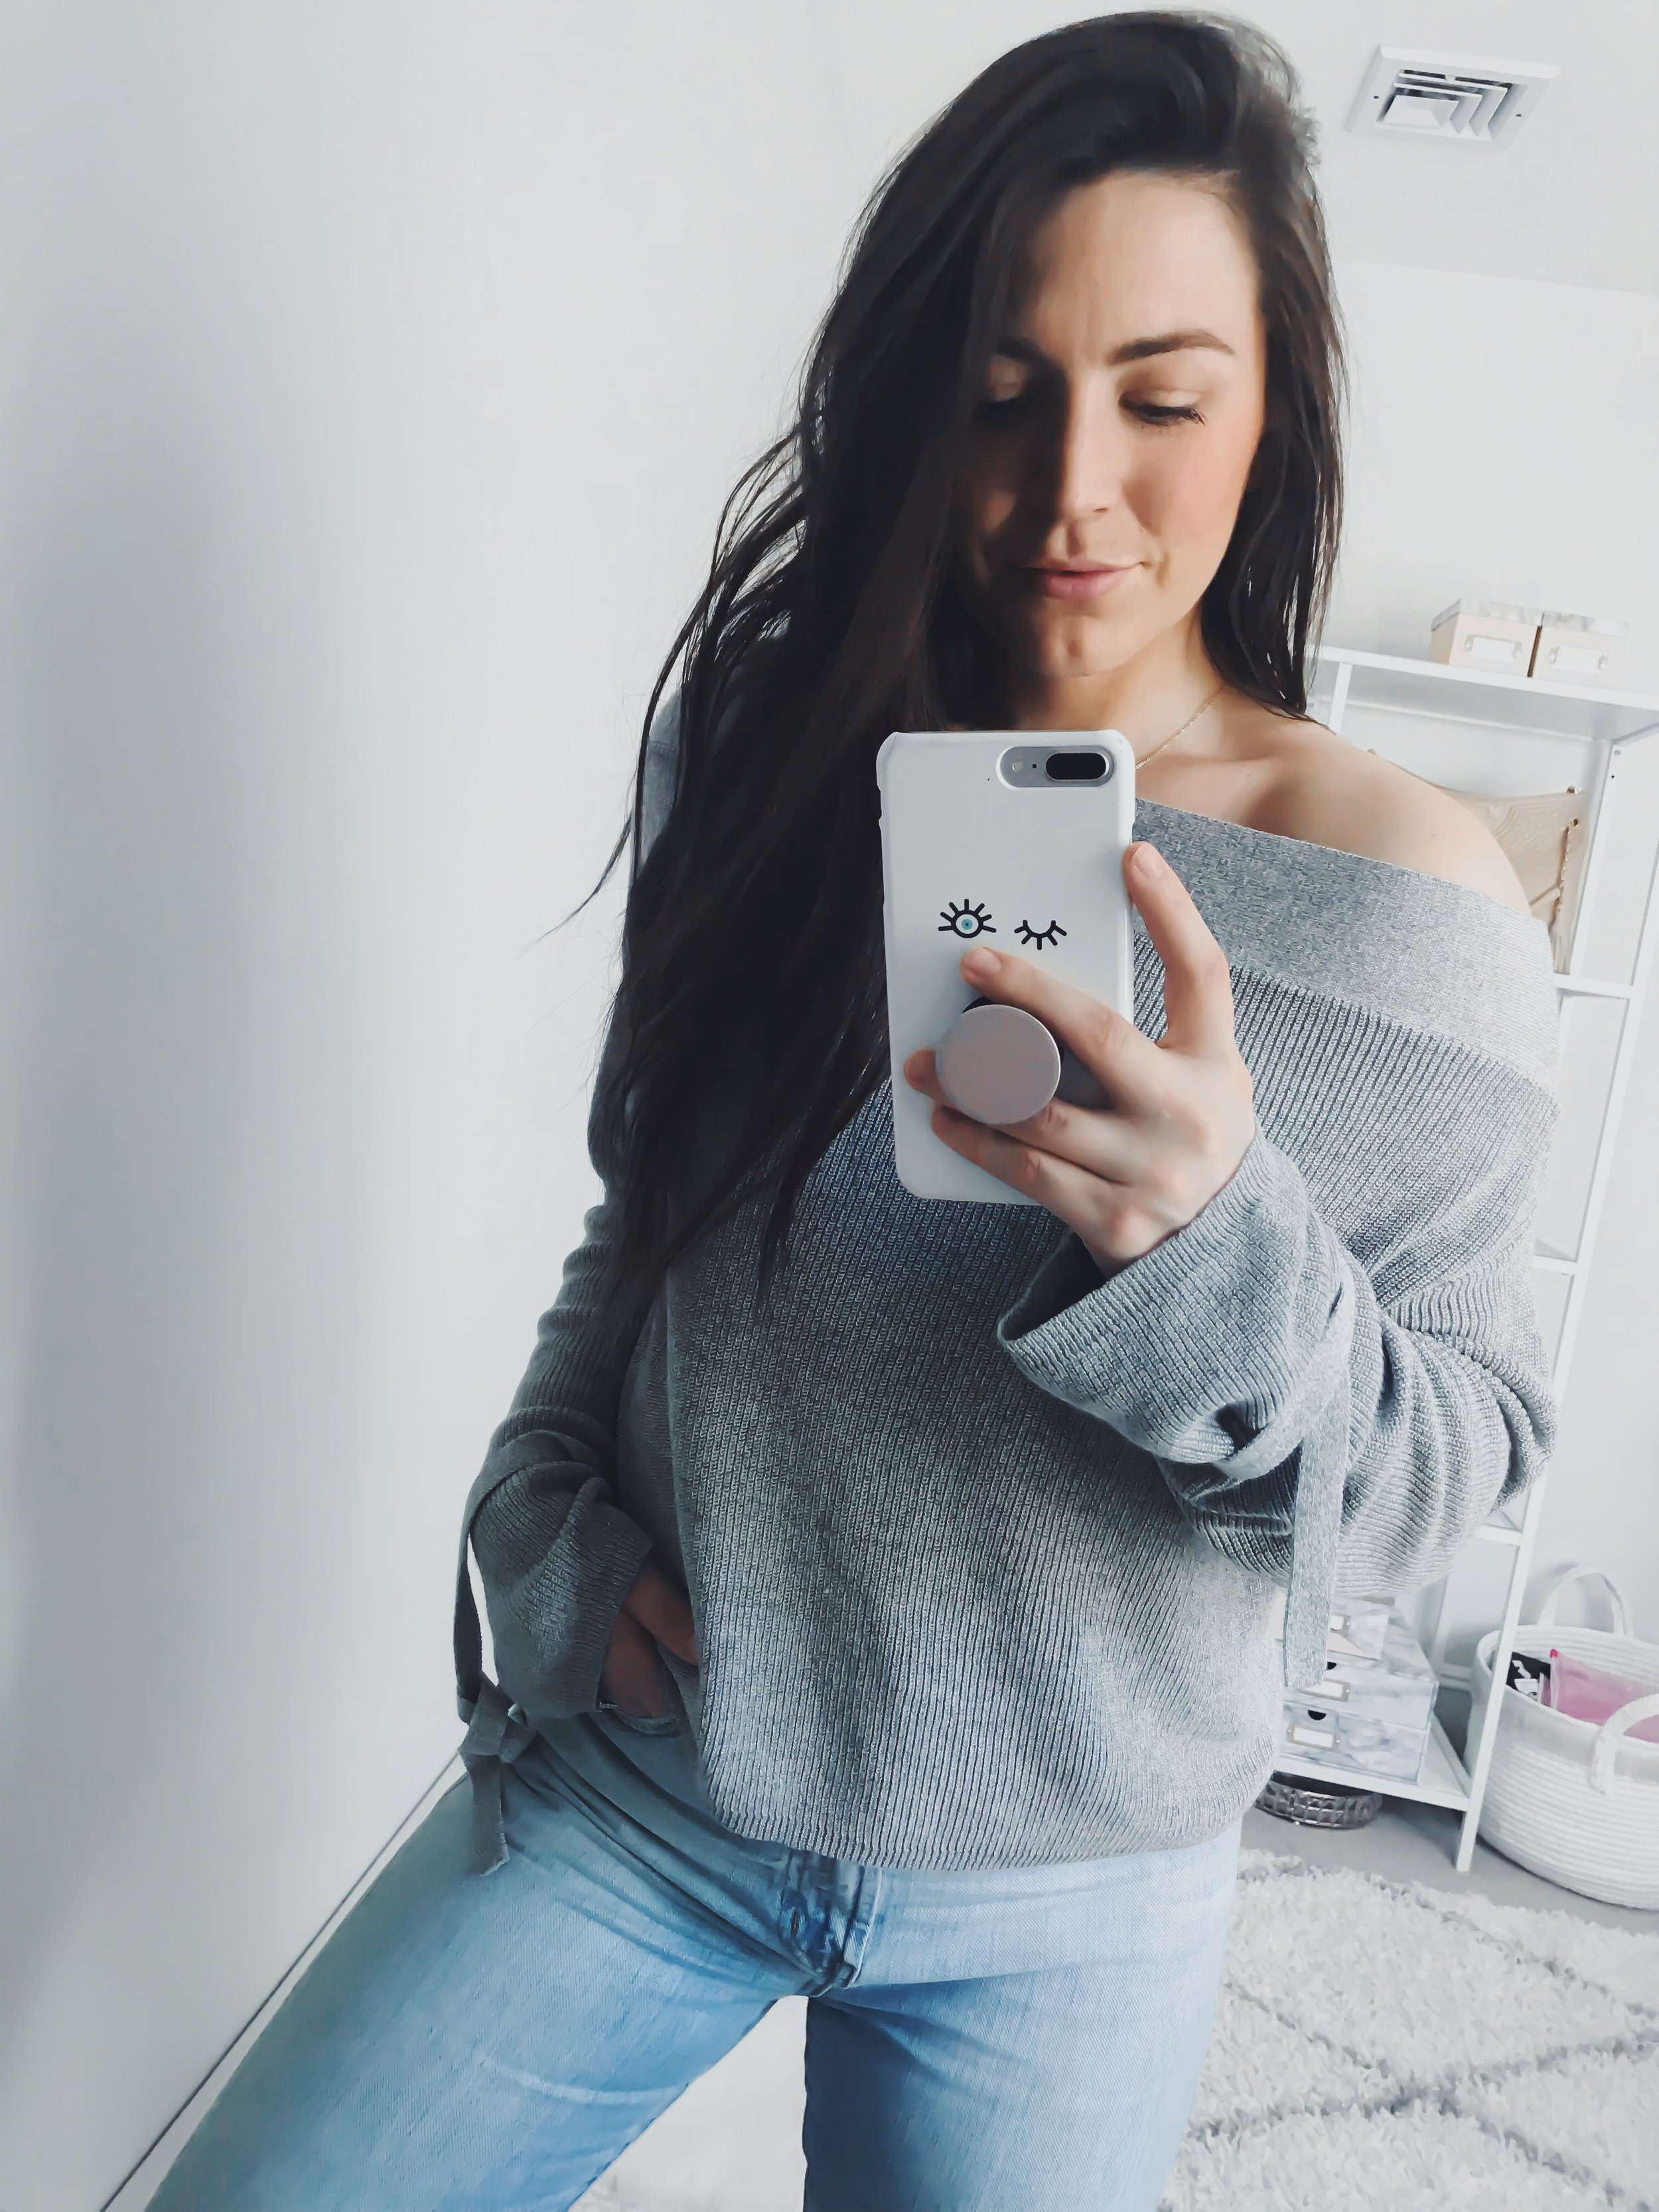 Instagram Round Up + Current Sales | Pine Barren Beauty | outfit of the day, outfit details, spring outfit, off the shoulder sweater, madewell denim